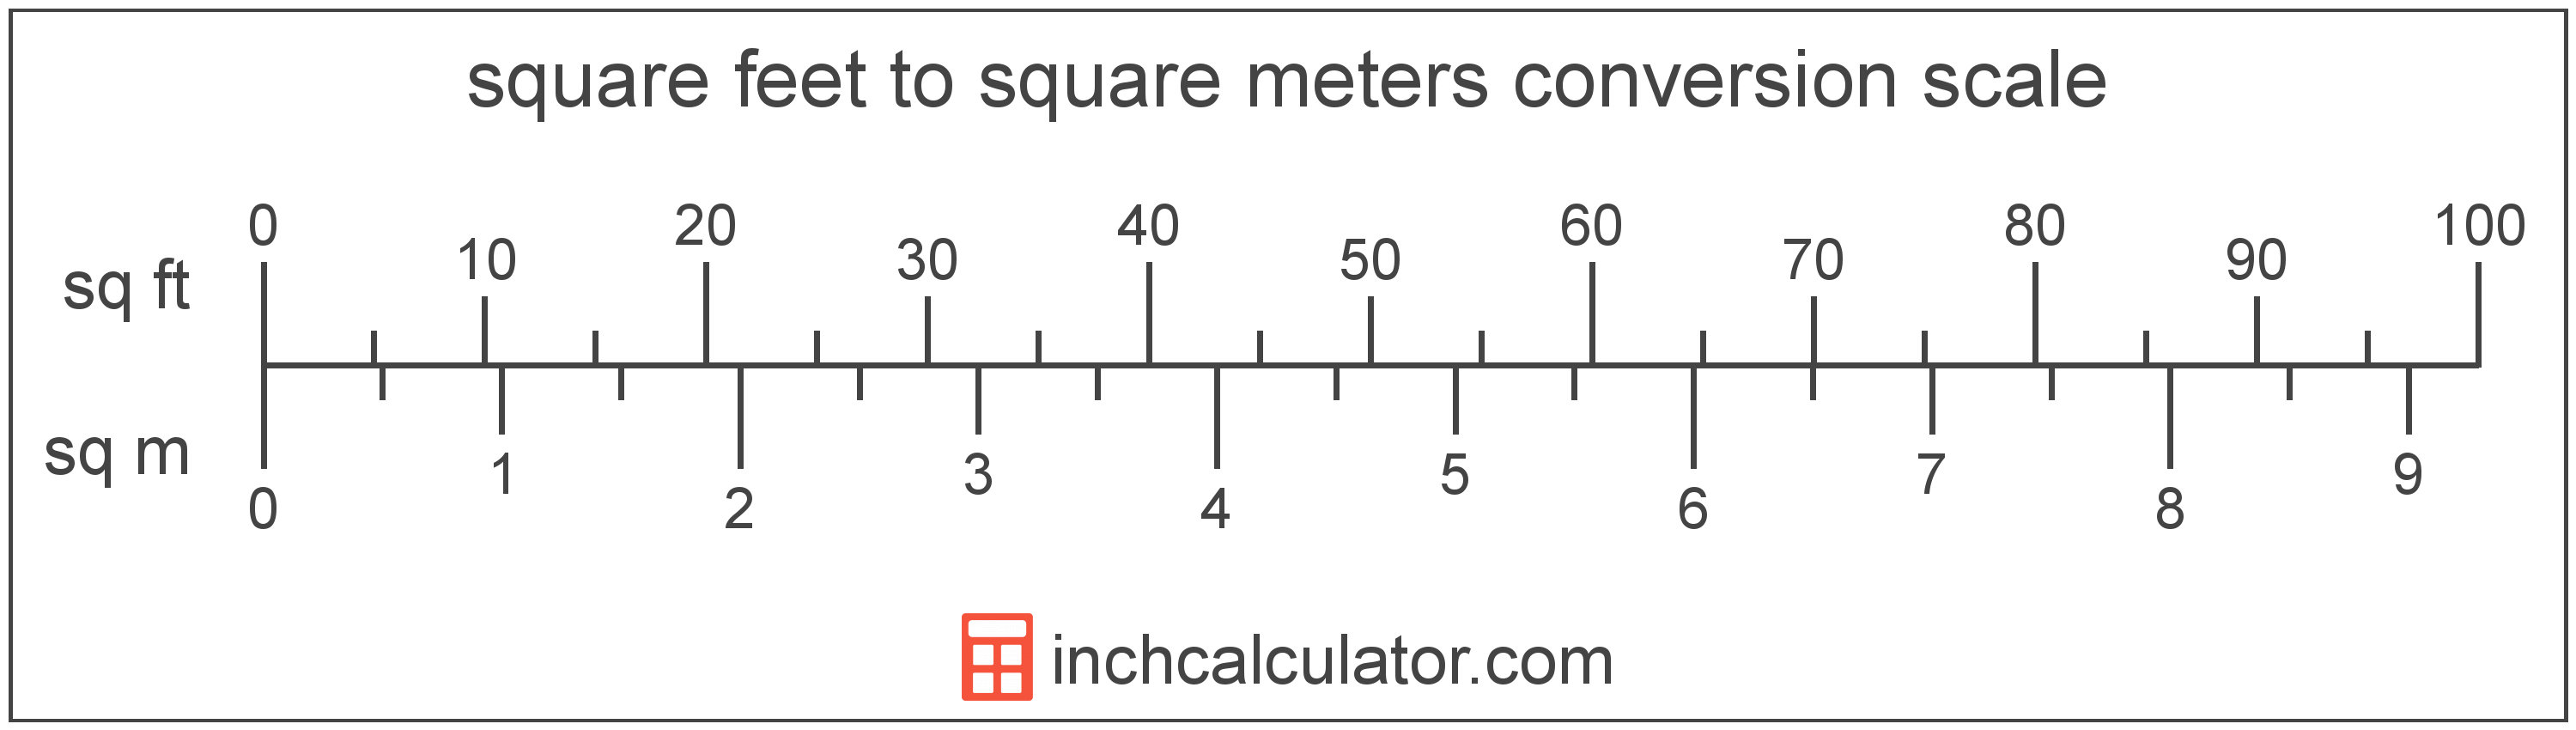 conversion scale showing square feet and equivalent square meters area values